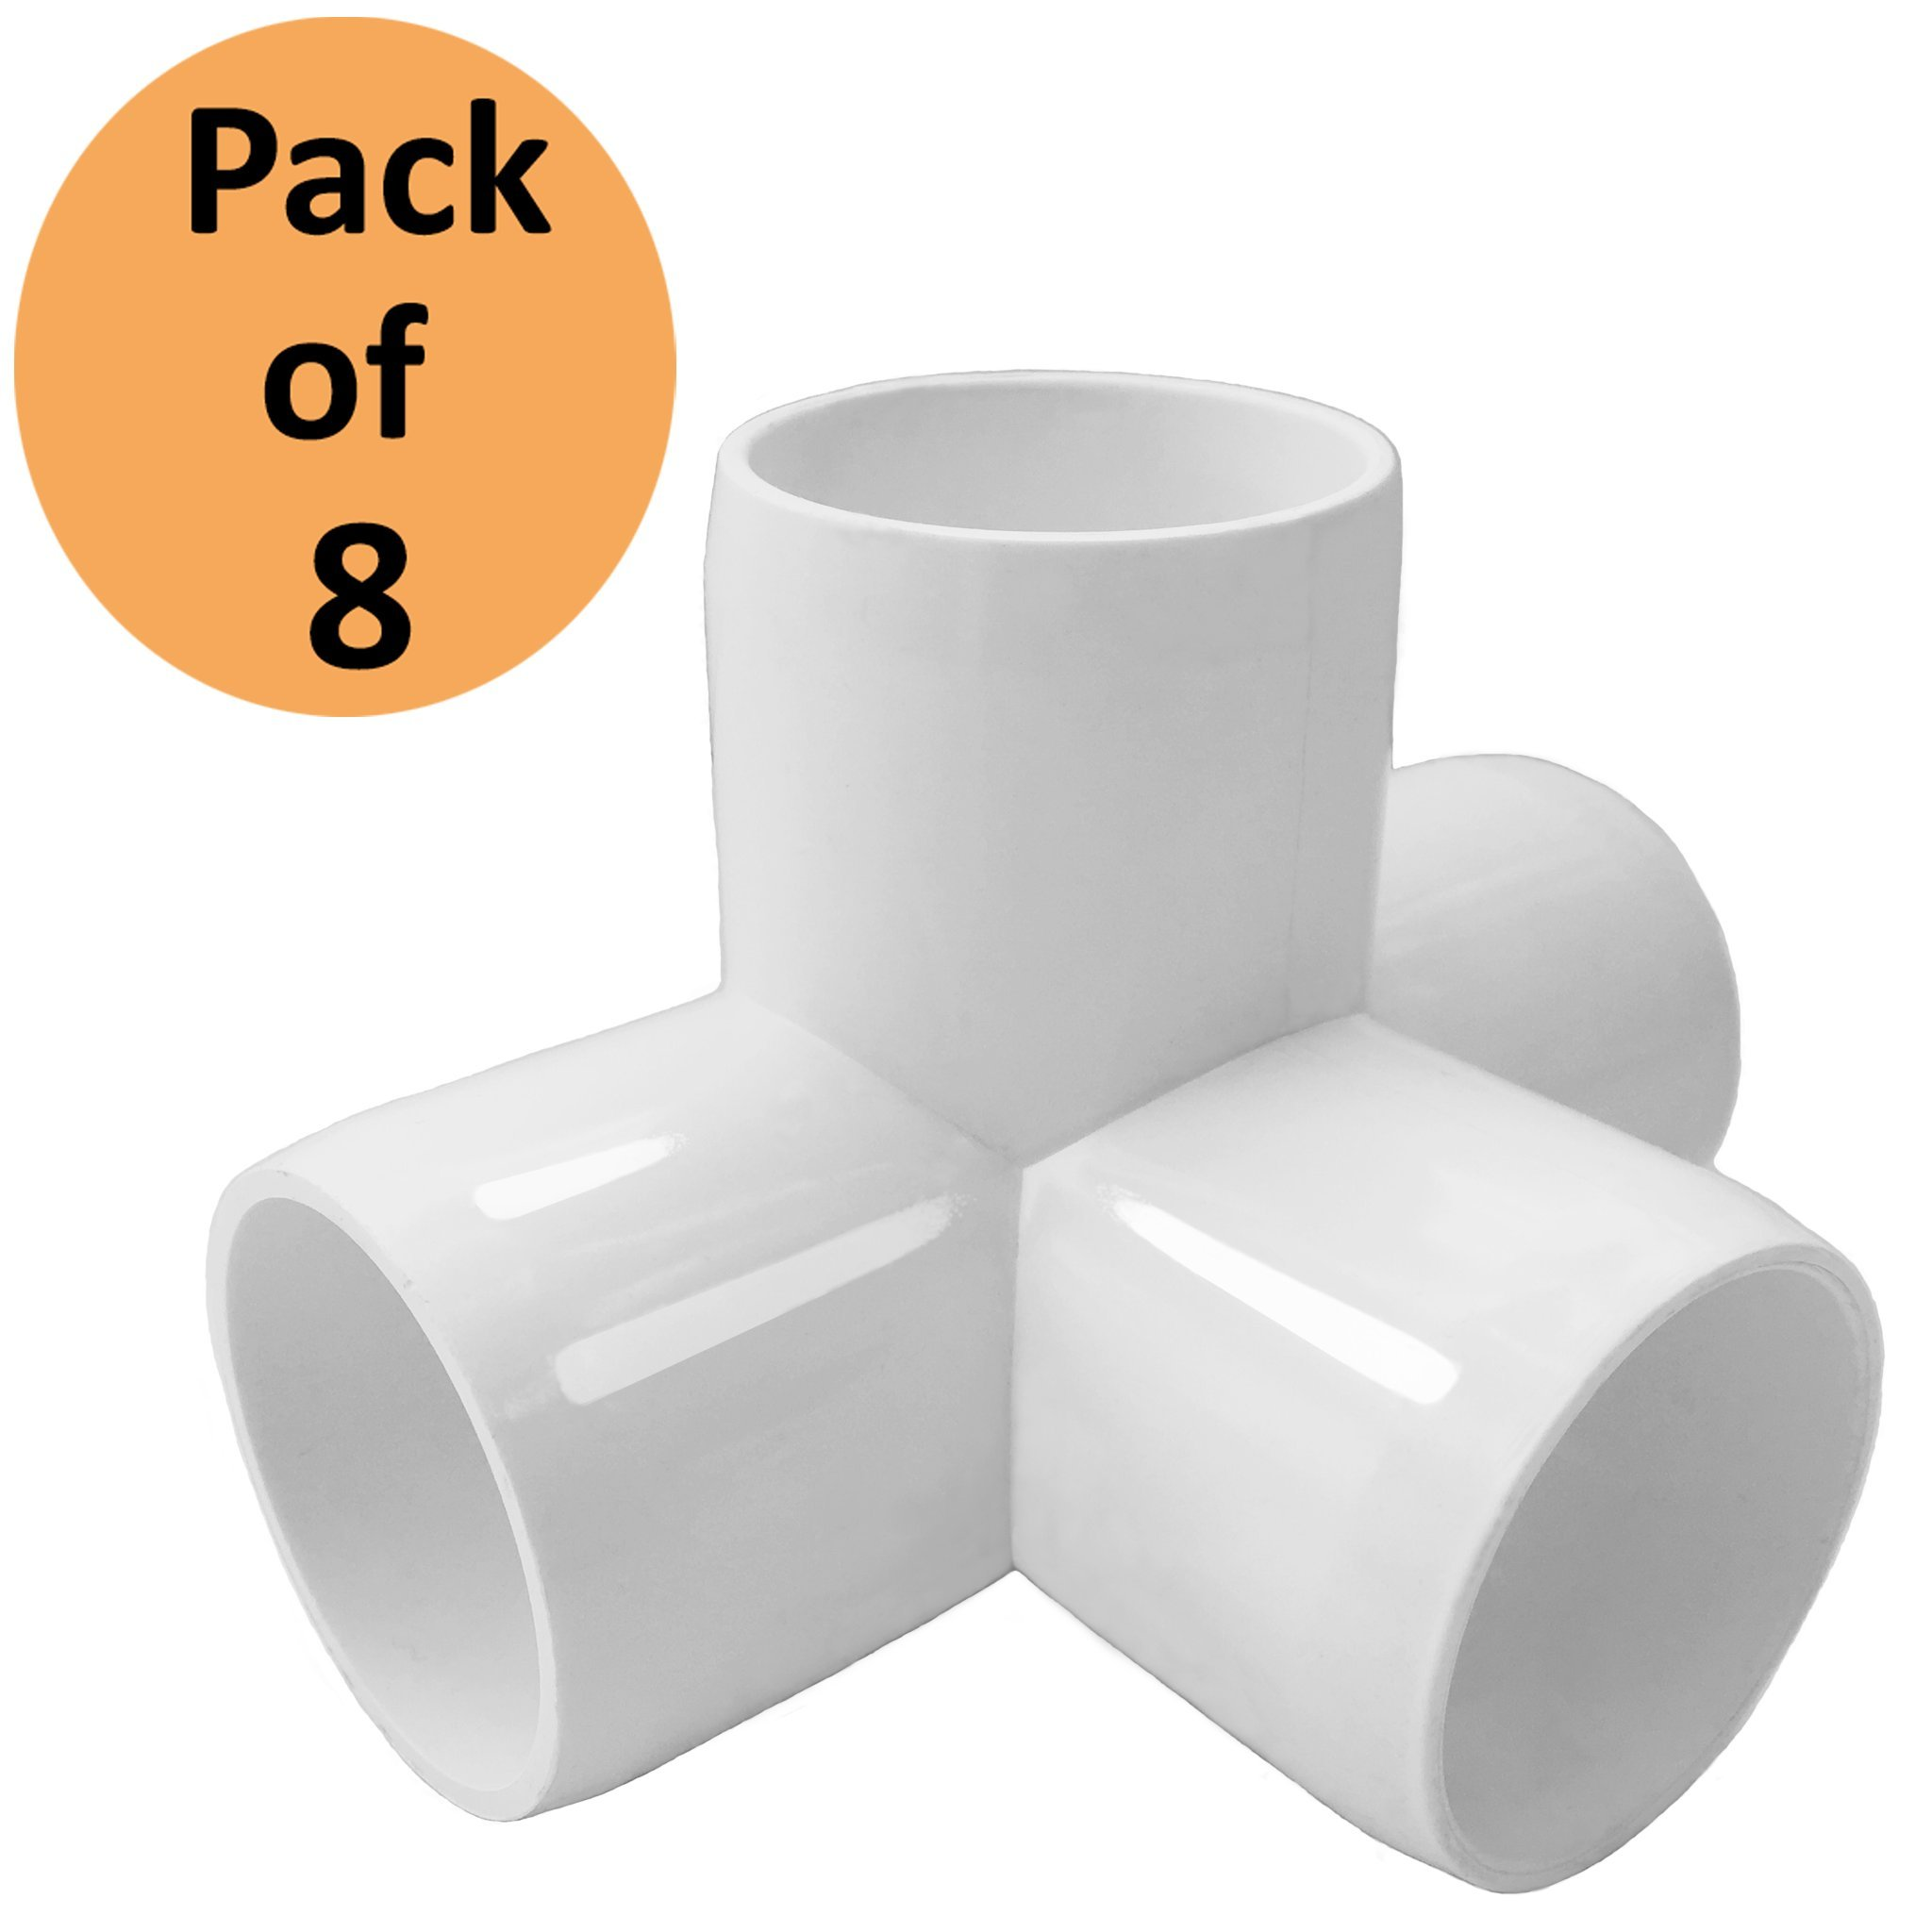 4 Way 1inch Tee PVC Fitting Elbow 1in - Build Heavy Duty PVC Furniture - PVC Elbow Fittings [Pack of 8]